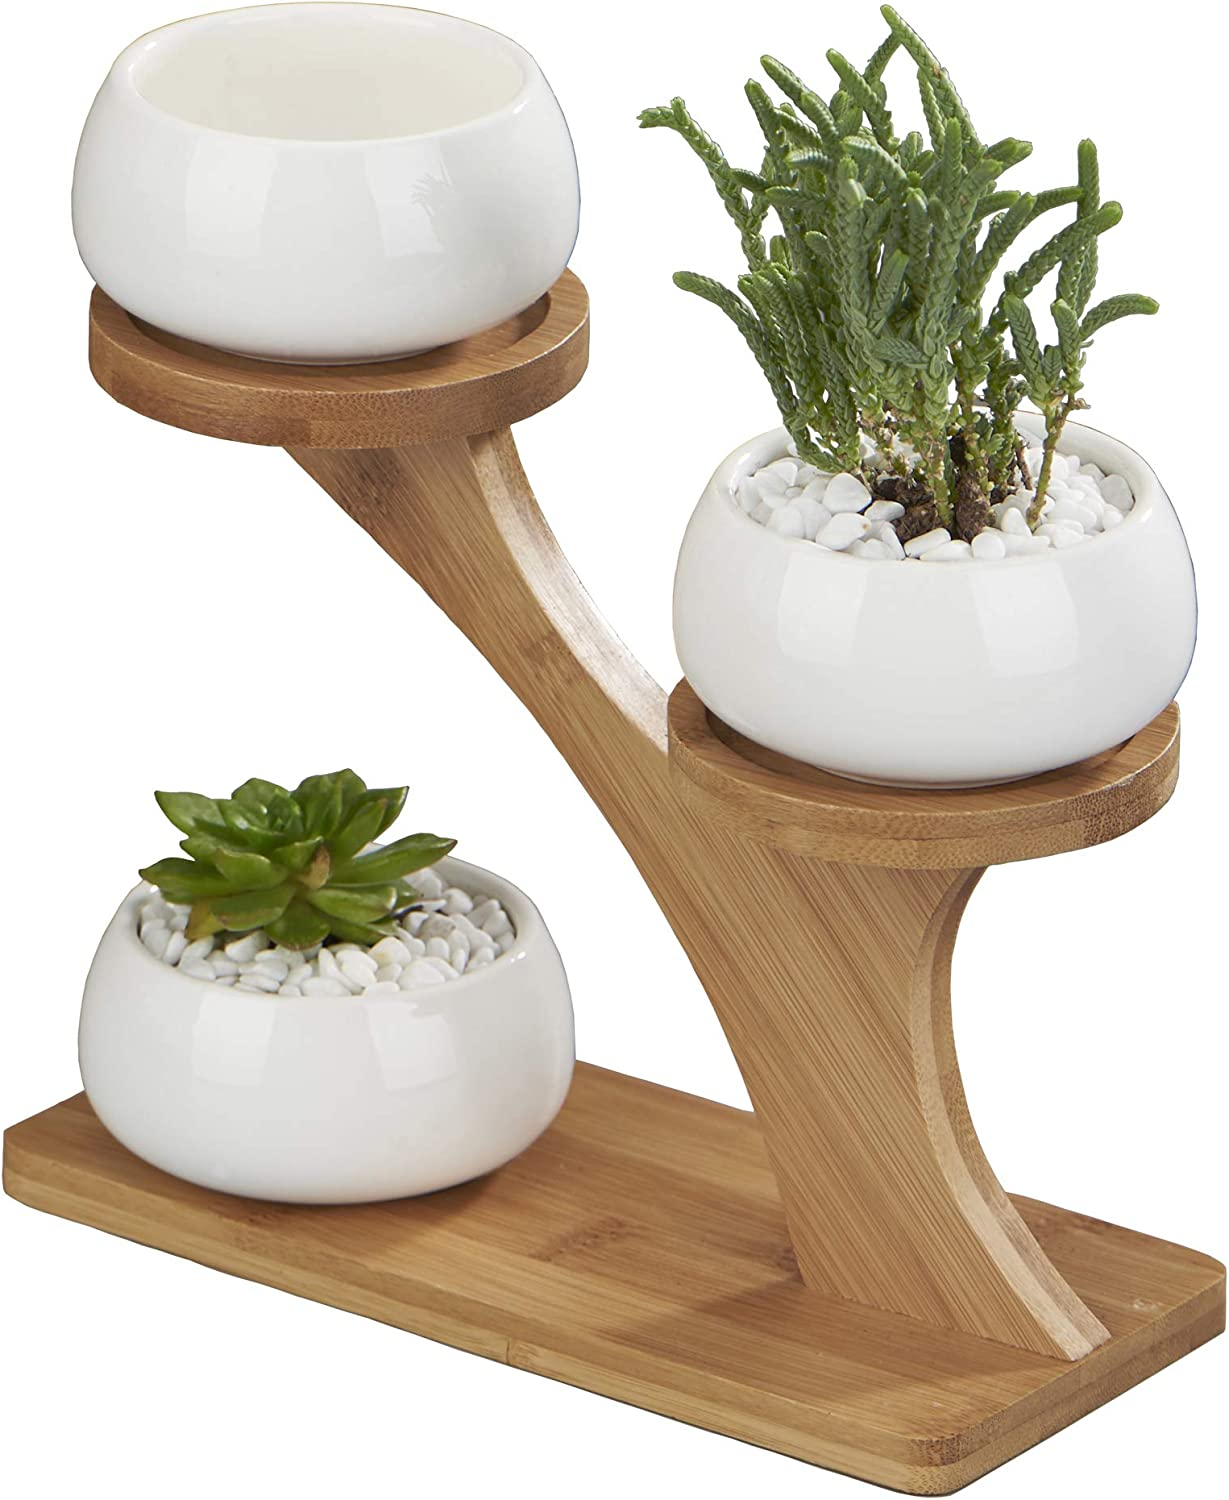 Amazon Com Flowerplus Planter Pots Indoor 3 Pack 3 Inch White Ceramic Decorative Small Round Succulent Cactus Flower Plant Pot With Tree Tier Bamboo Stand For Garden Kitchen Home Office Desk Decorations Kitchen